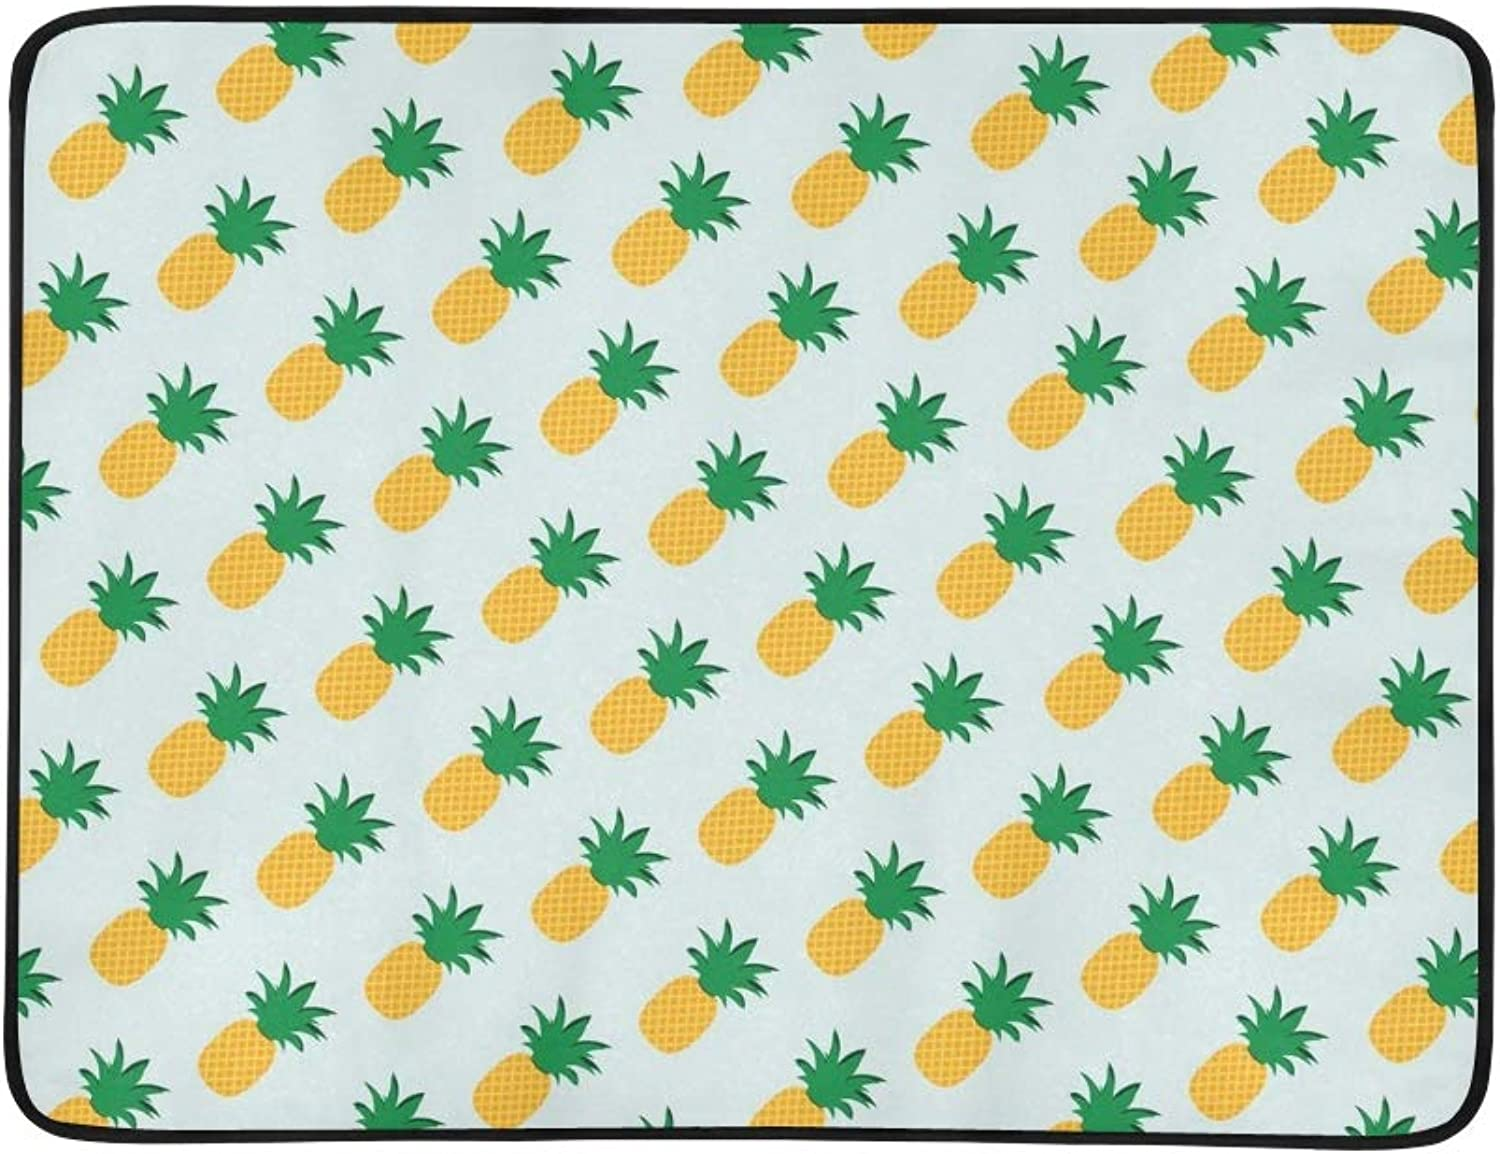 Pineapple Portable and Foldable Blanket Mat 60x78 Inch Handy Mat for Camping Picnic Beach Indoor Outdoor Travel